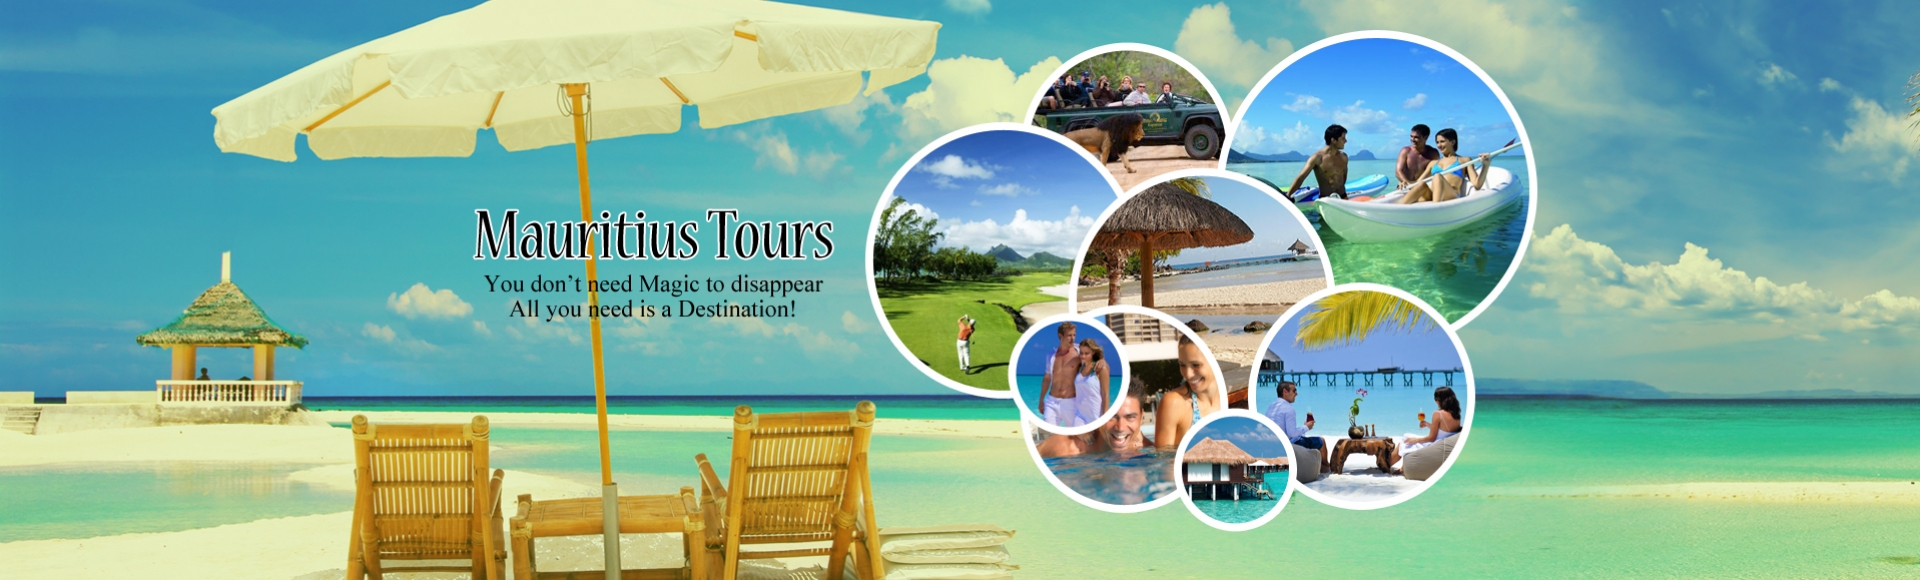 Mauritius for Vacation Tour